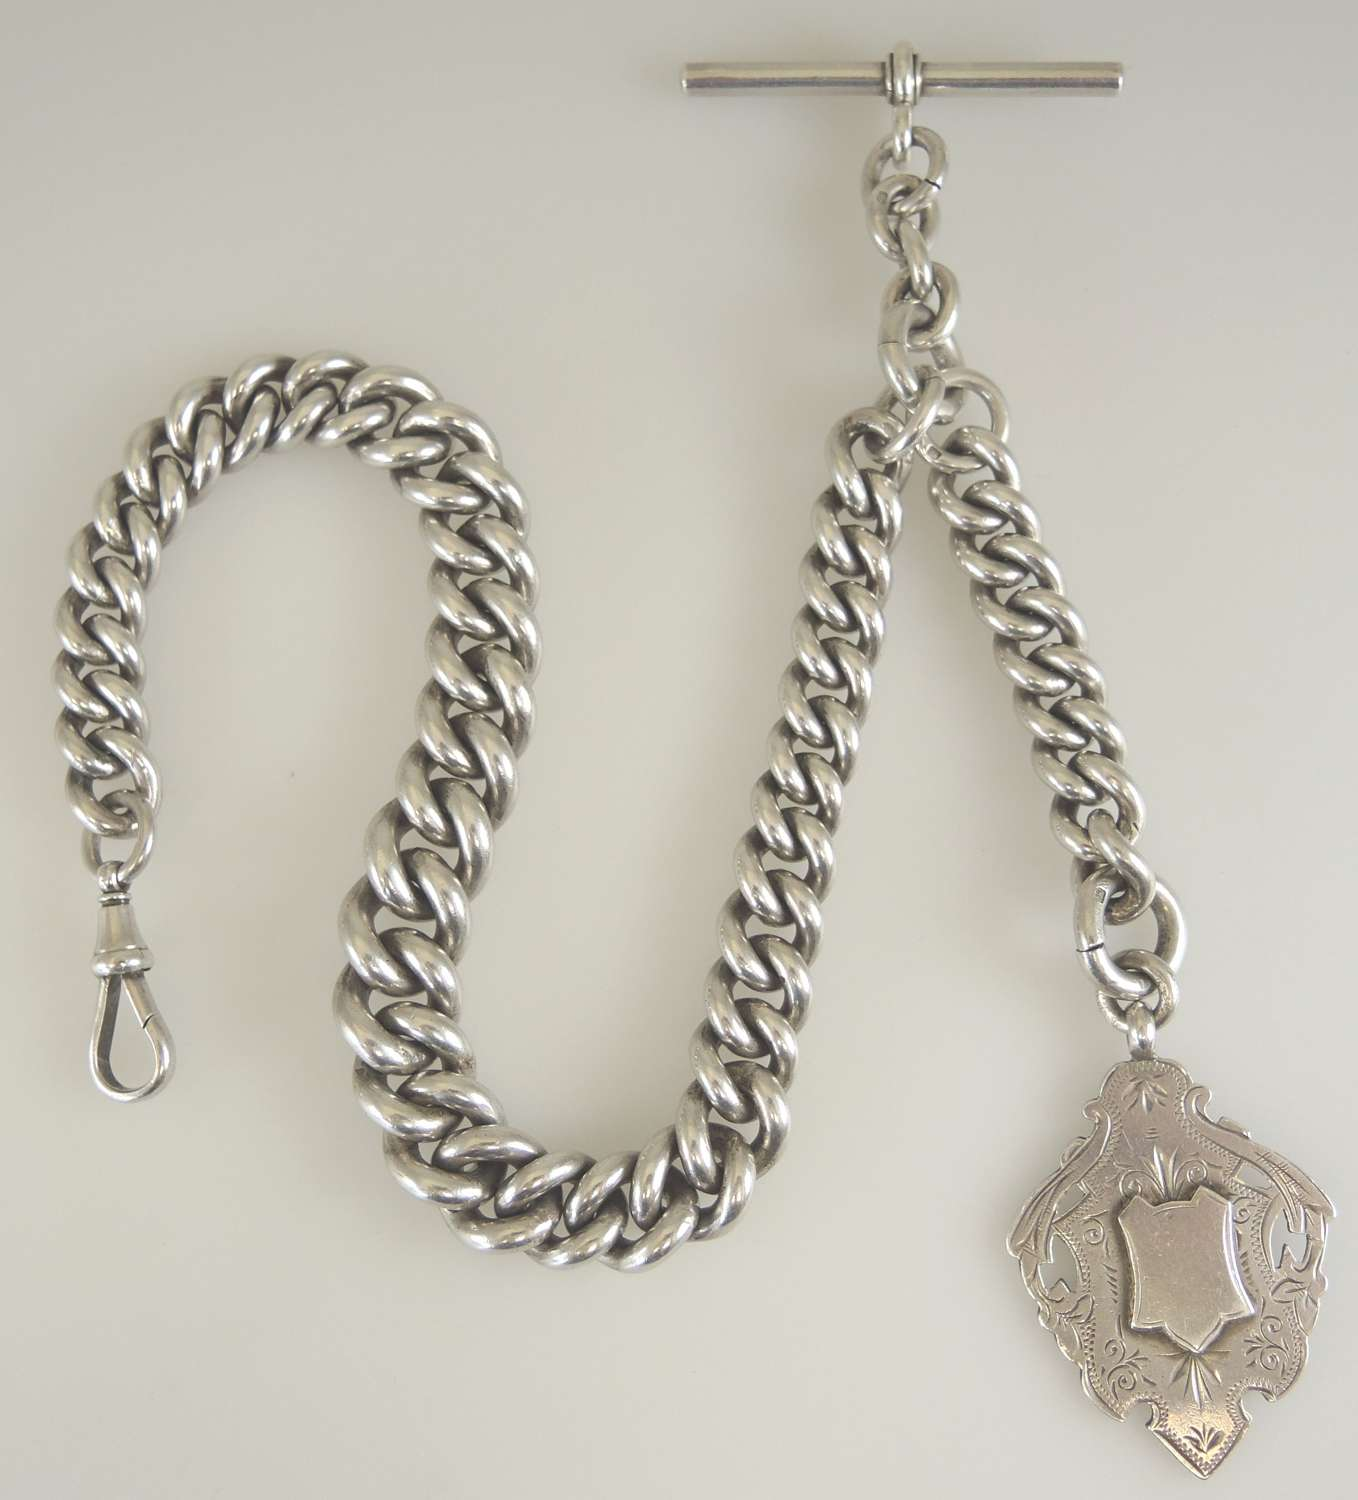 Massive English silver watch chain. Weighs 189g. c1893